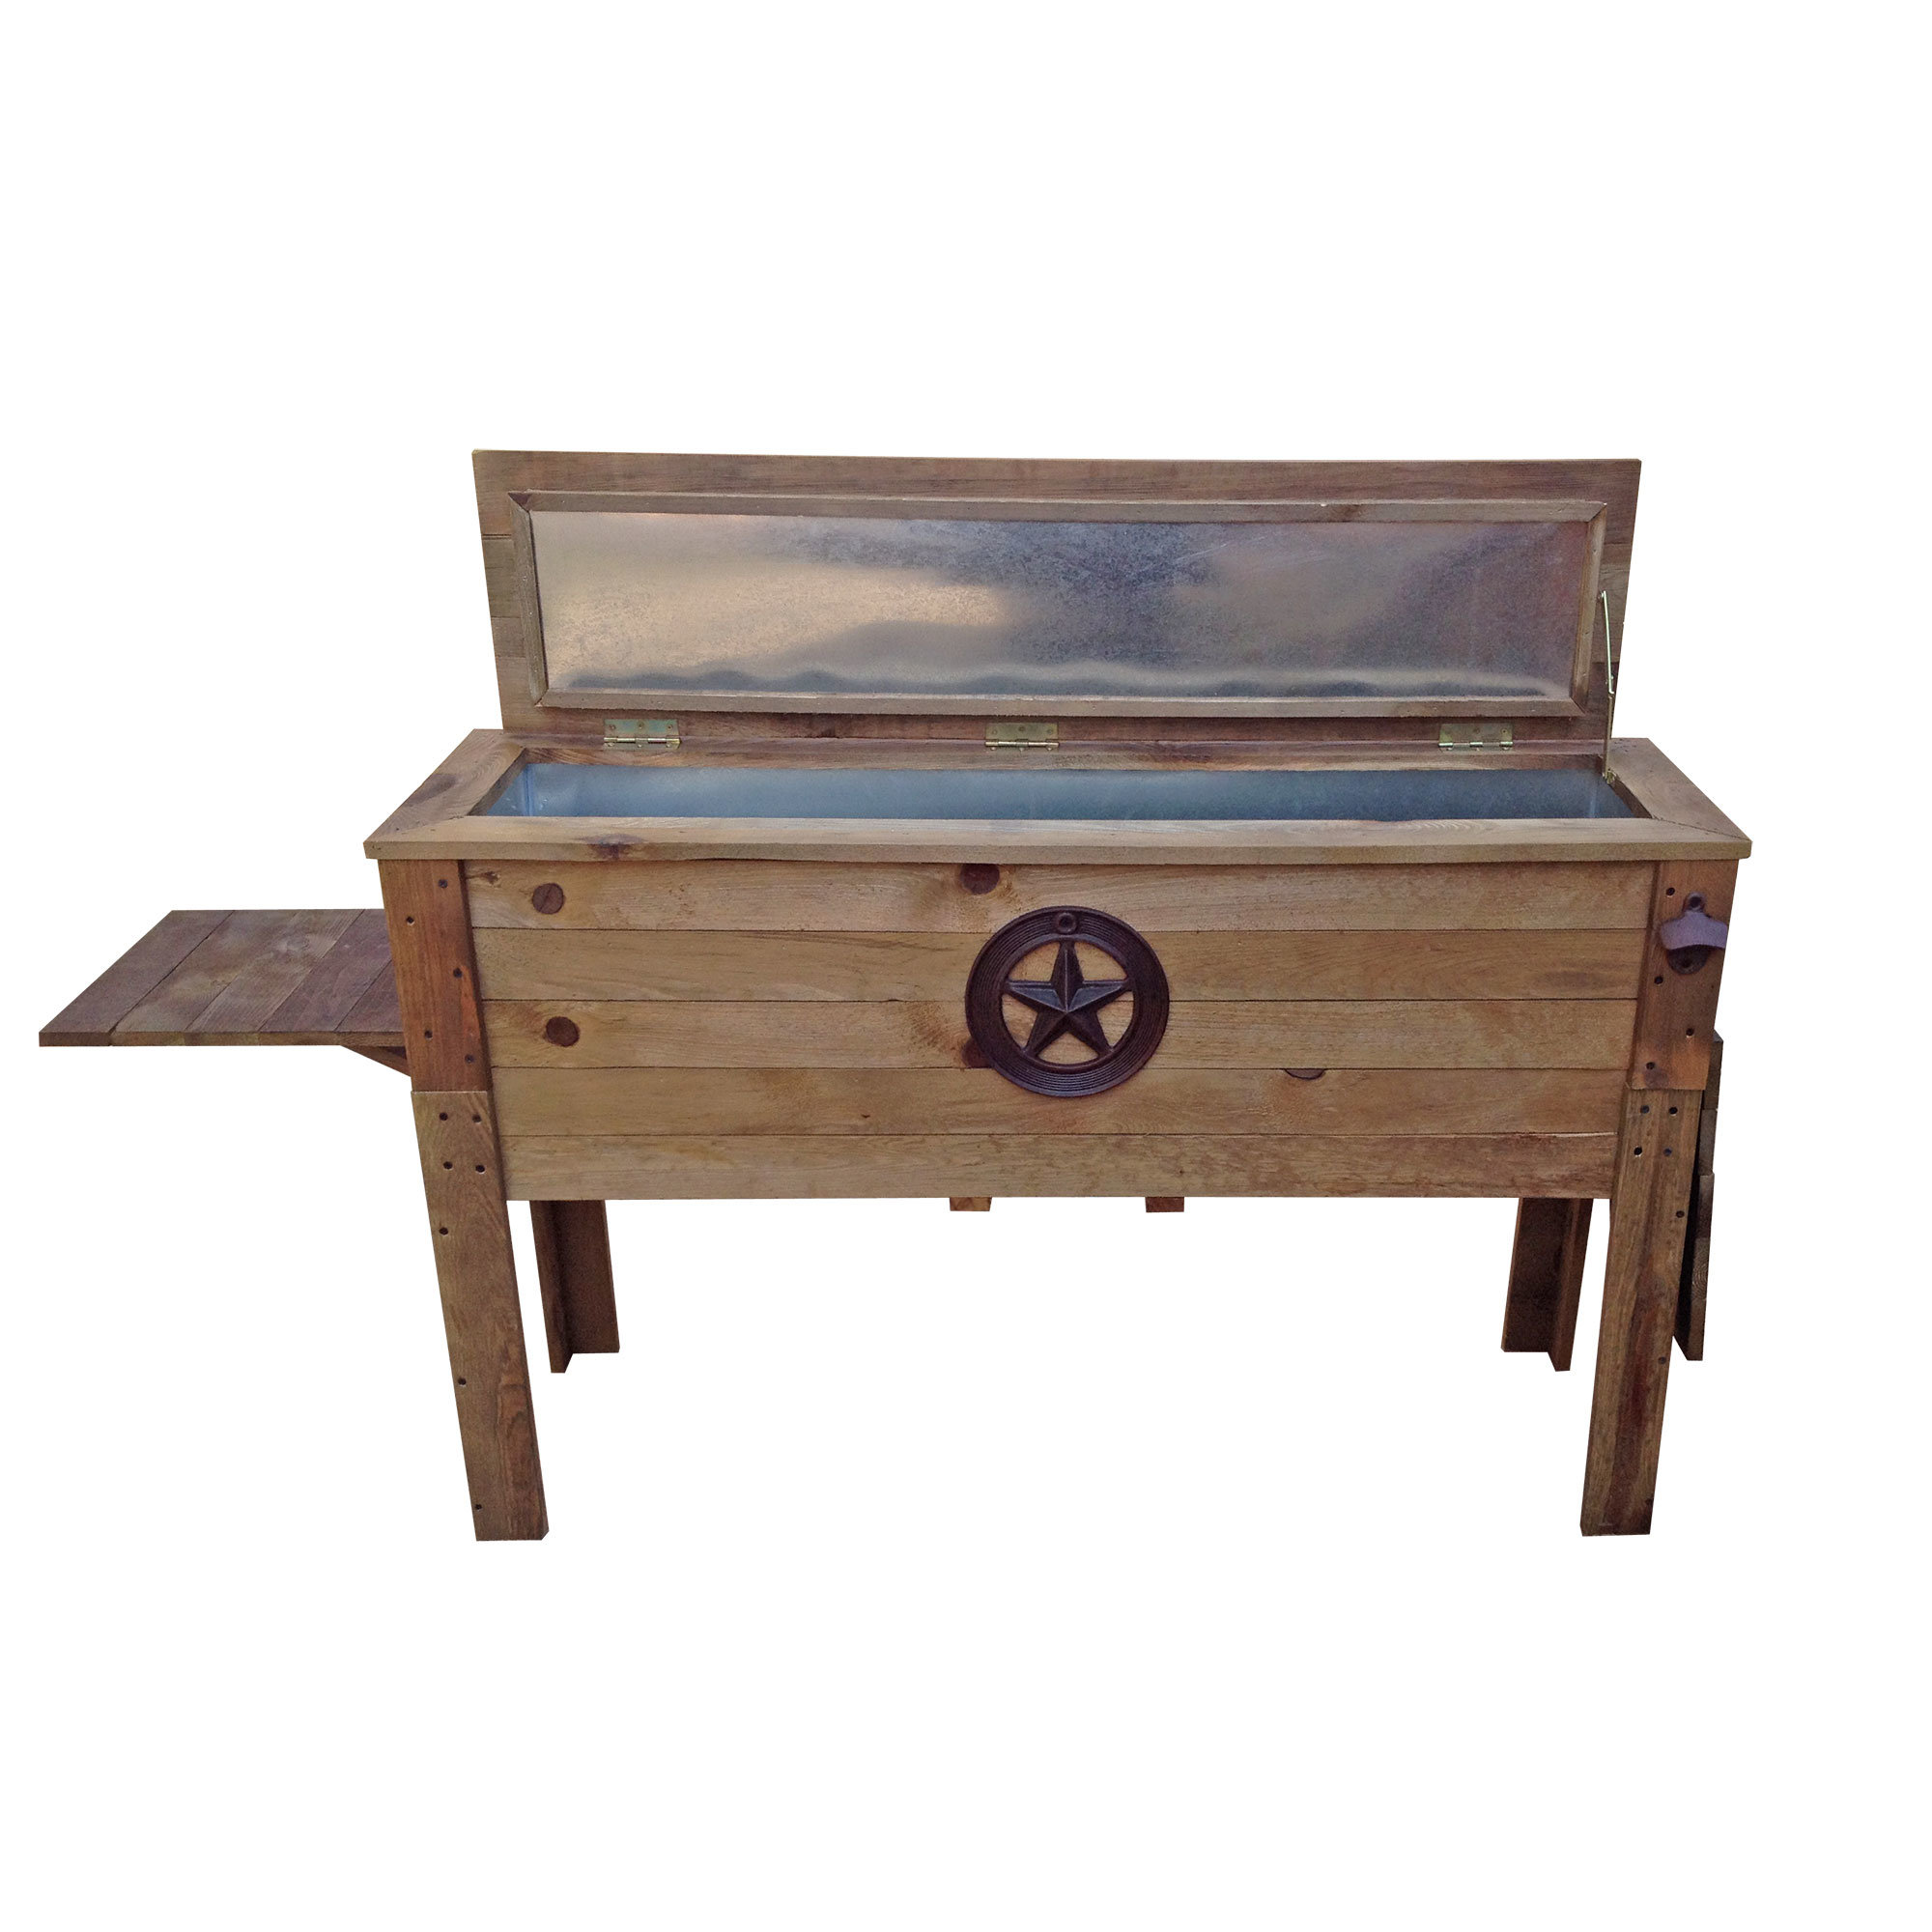 outdoor cooler side table decorative wooden distressed round accent garden bench seat bunnings with lights storage ott target ikea toy cubes mirrored drawer acrylic coffee bar